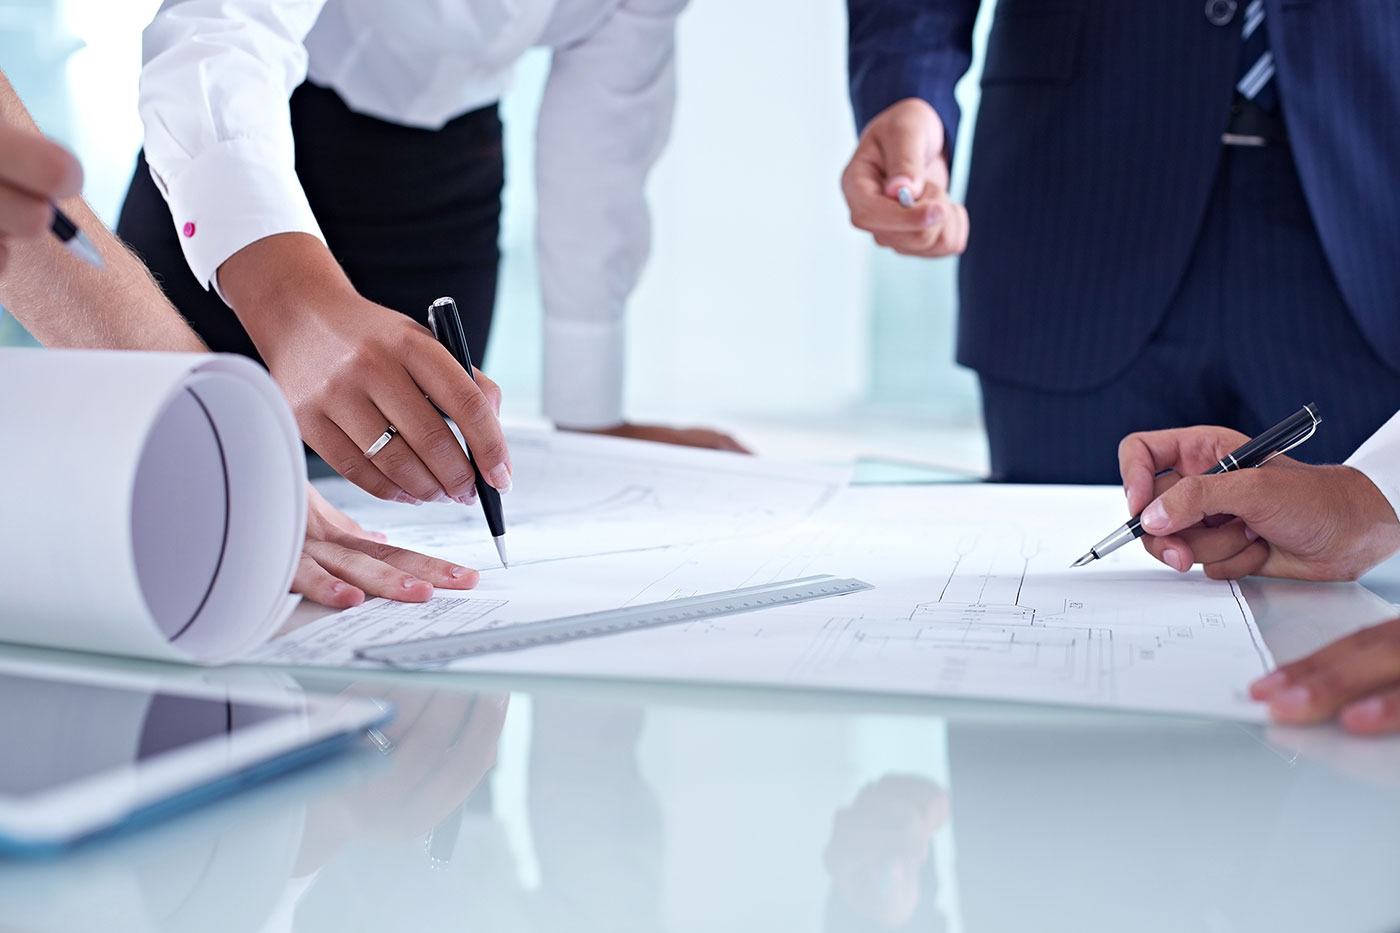 Skip the Lengthy RFP Process and Go with an Expert :: Energy